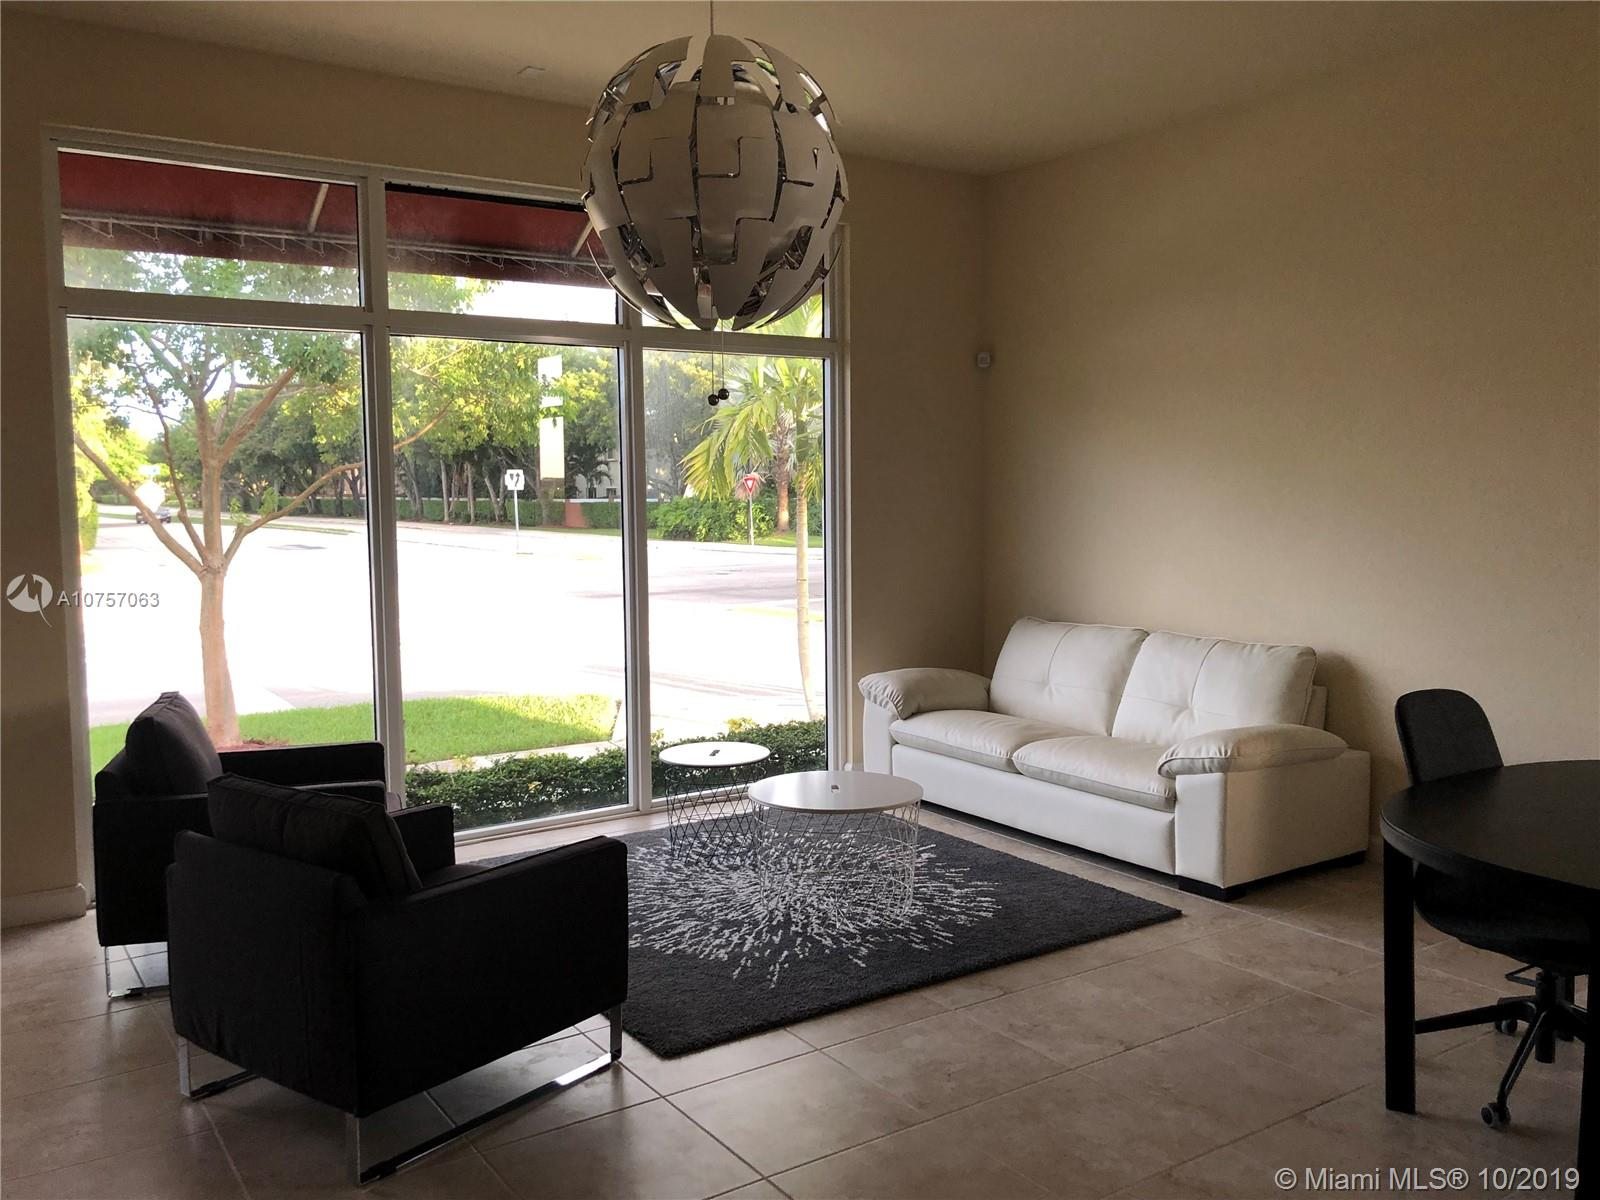 9580 SW 167th Ave #9580 For Sale A10757063, FL